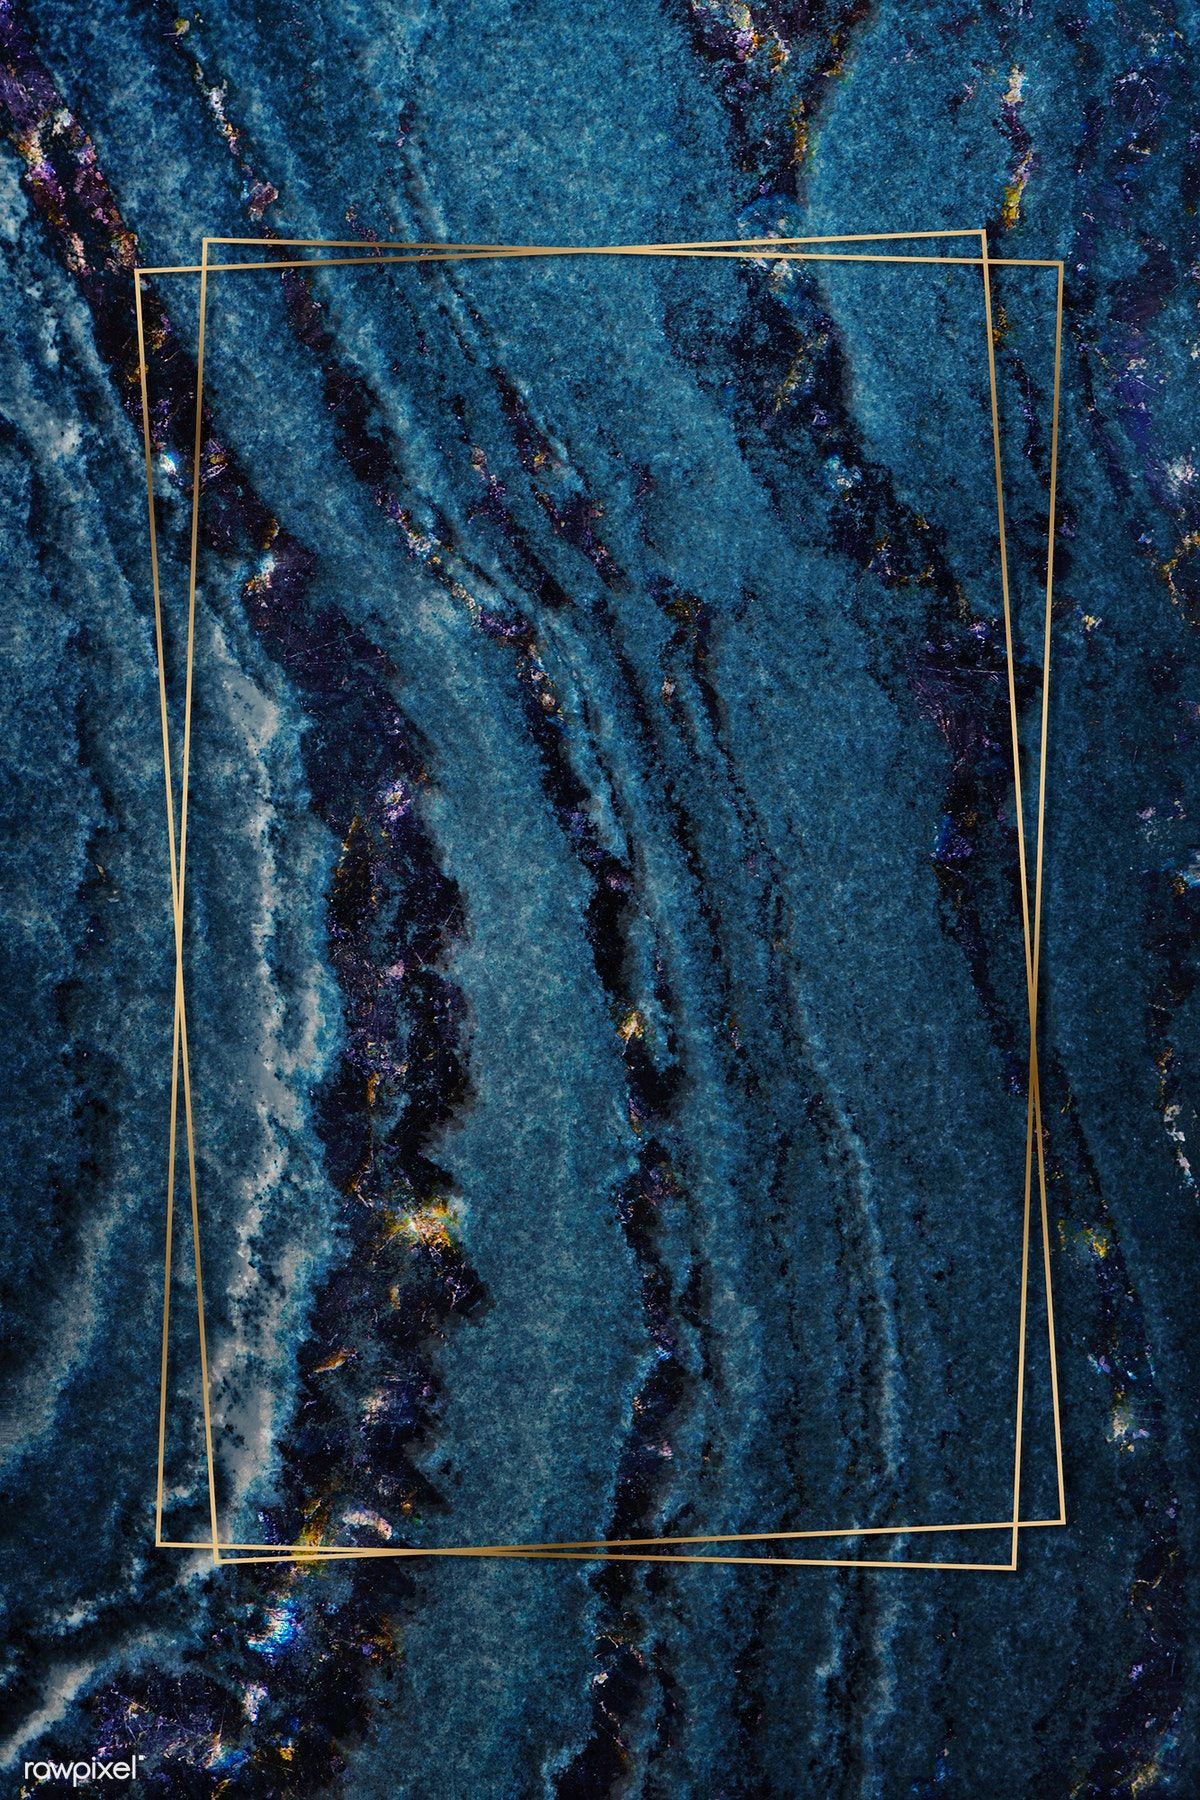 Download premium psd of Blue layered marble textured background